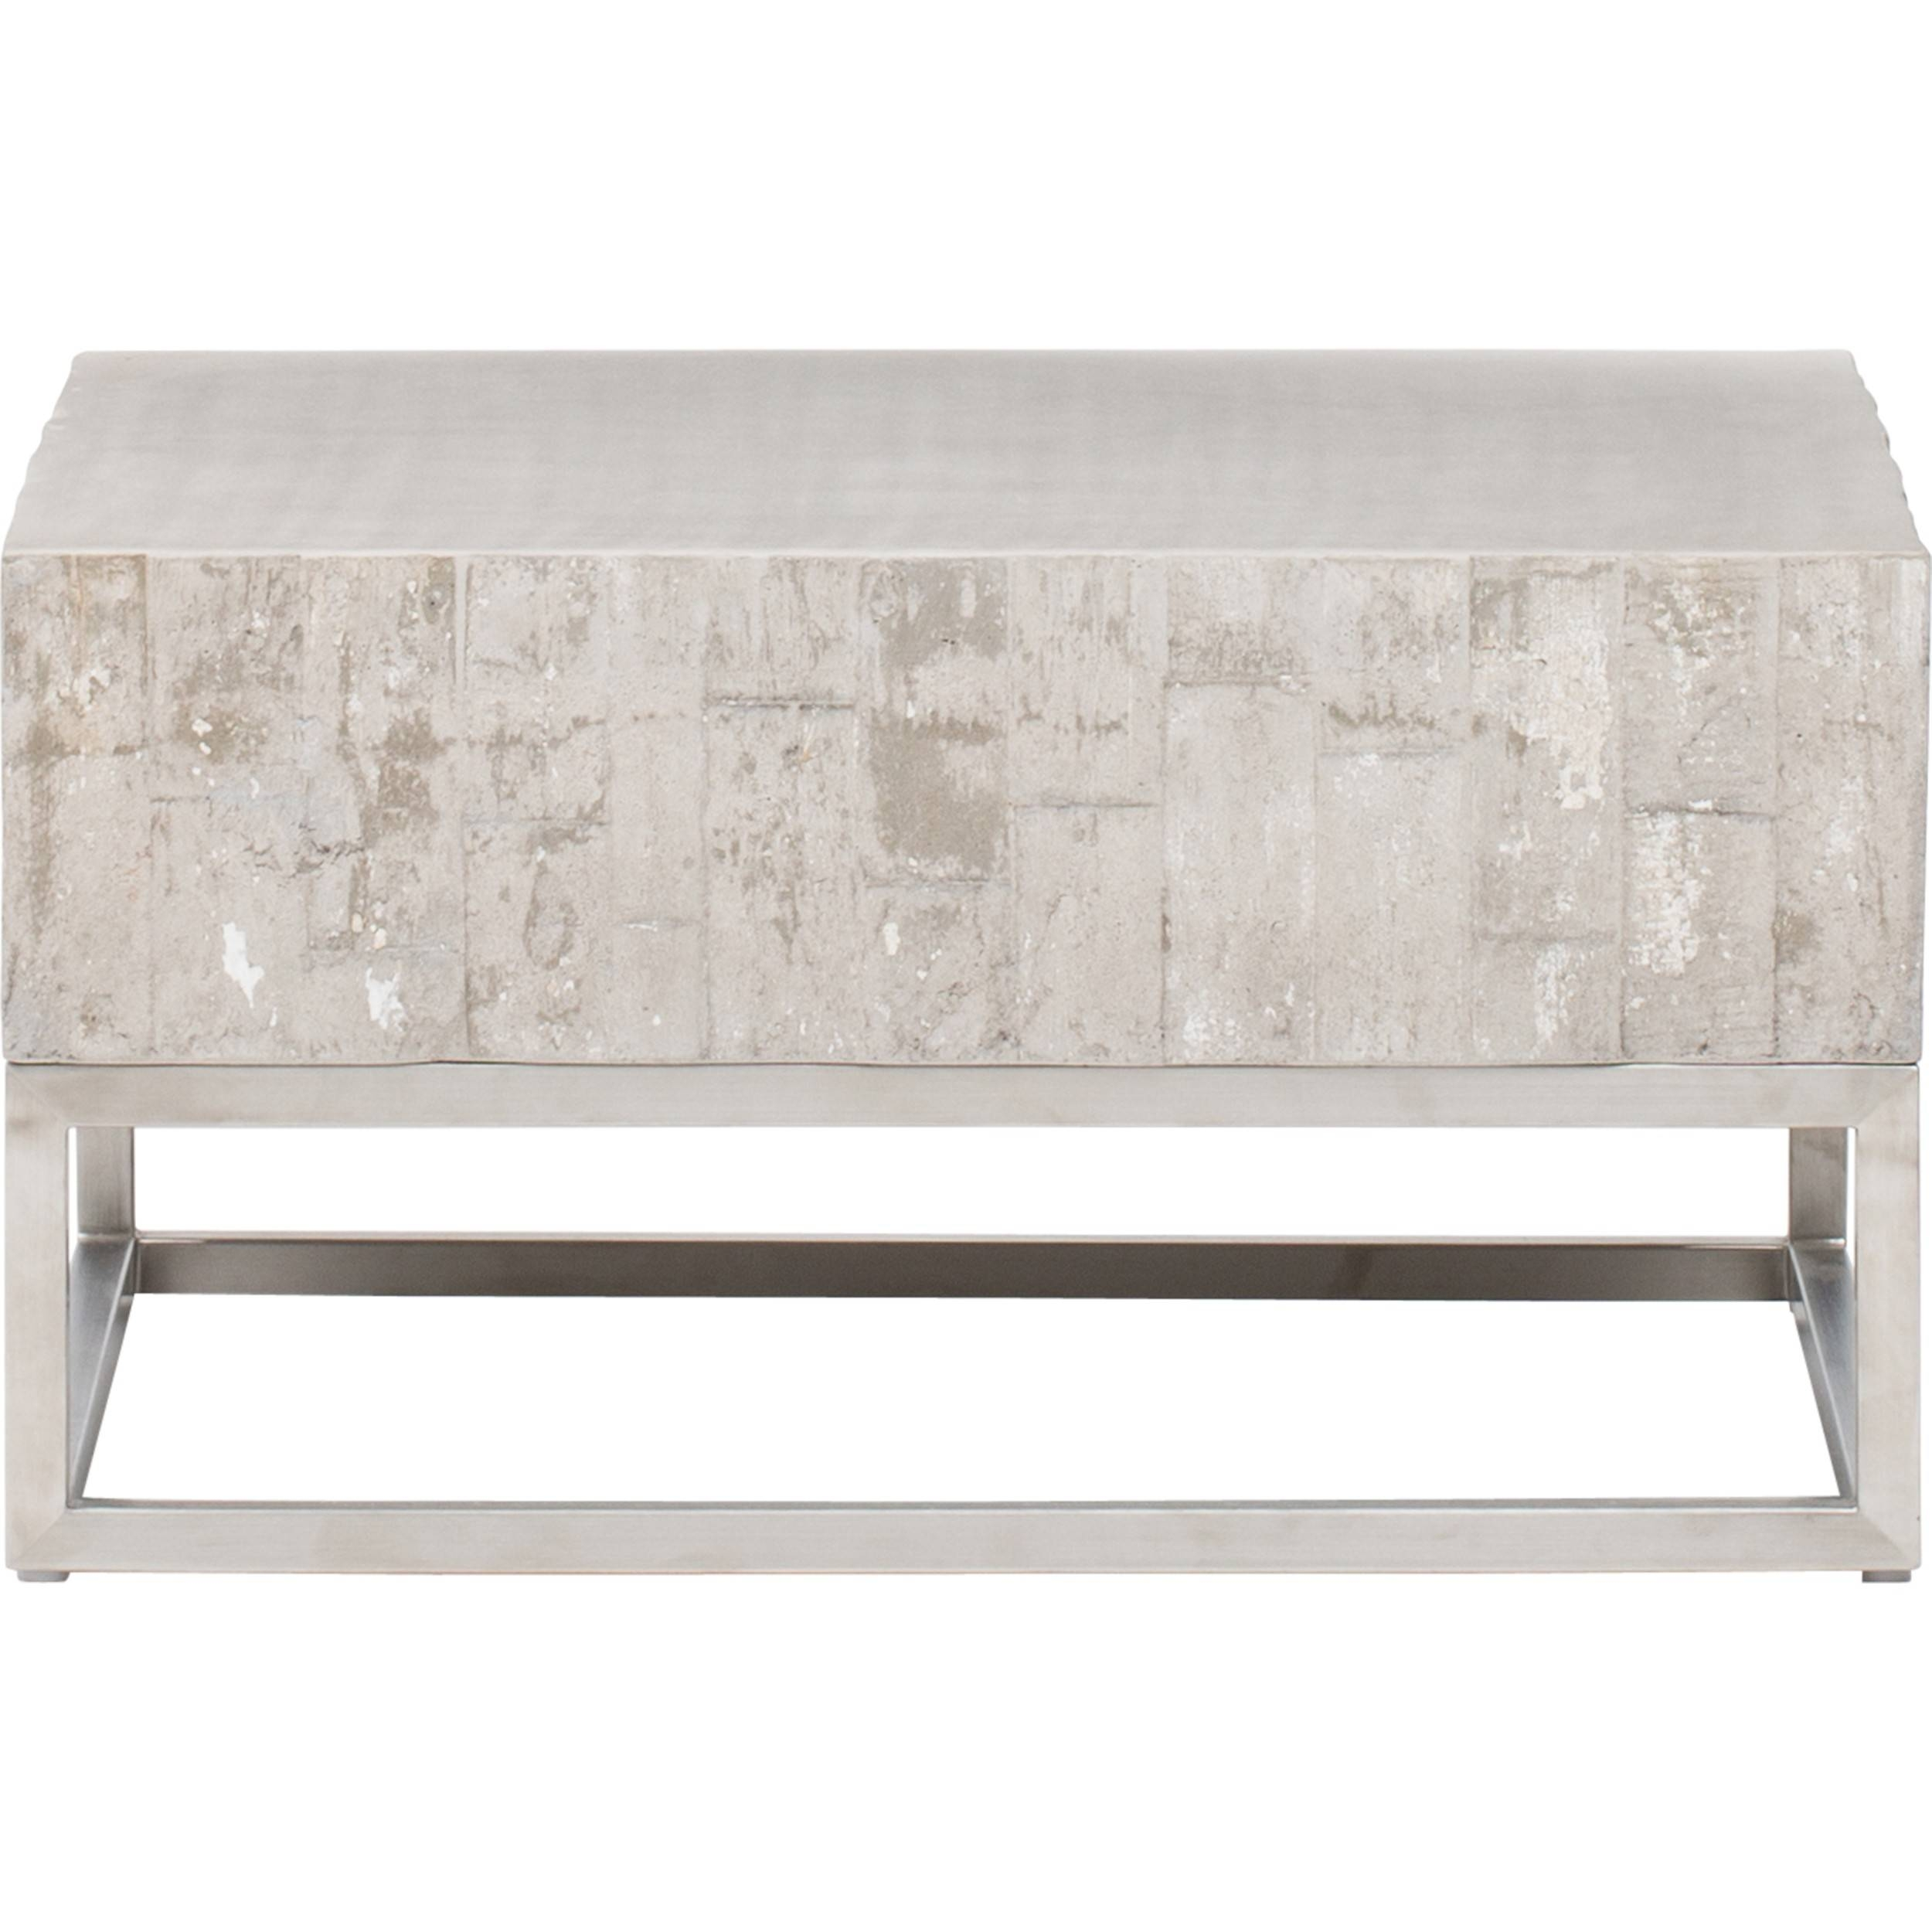 Concrete And Chrome Coffee Table – Coffee Tables – Accent Tables With Chrome Coffee Tables (View 8 of 30)